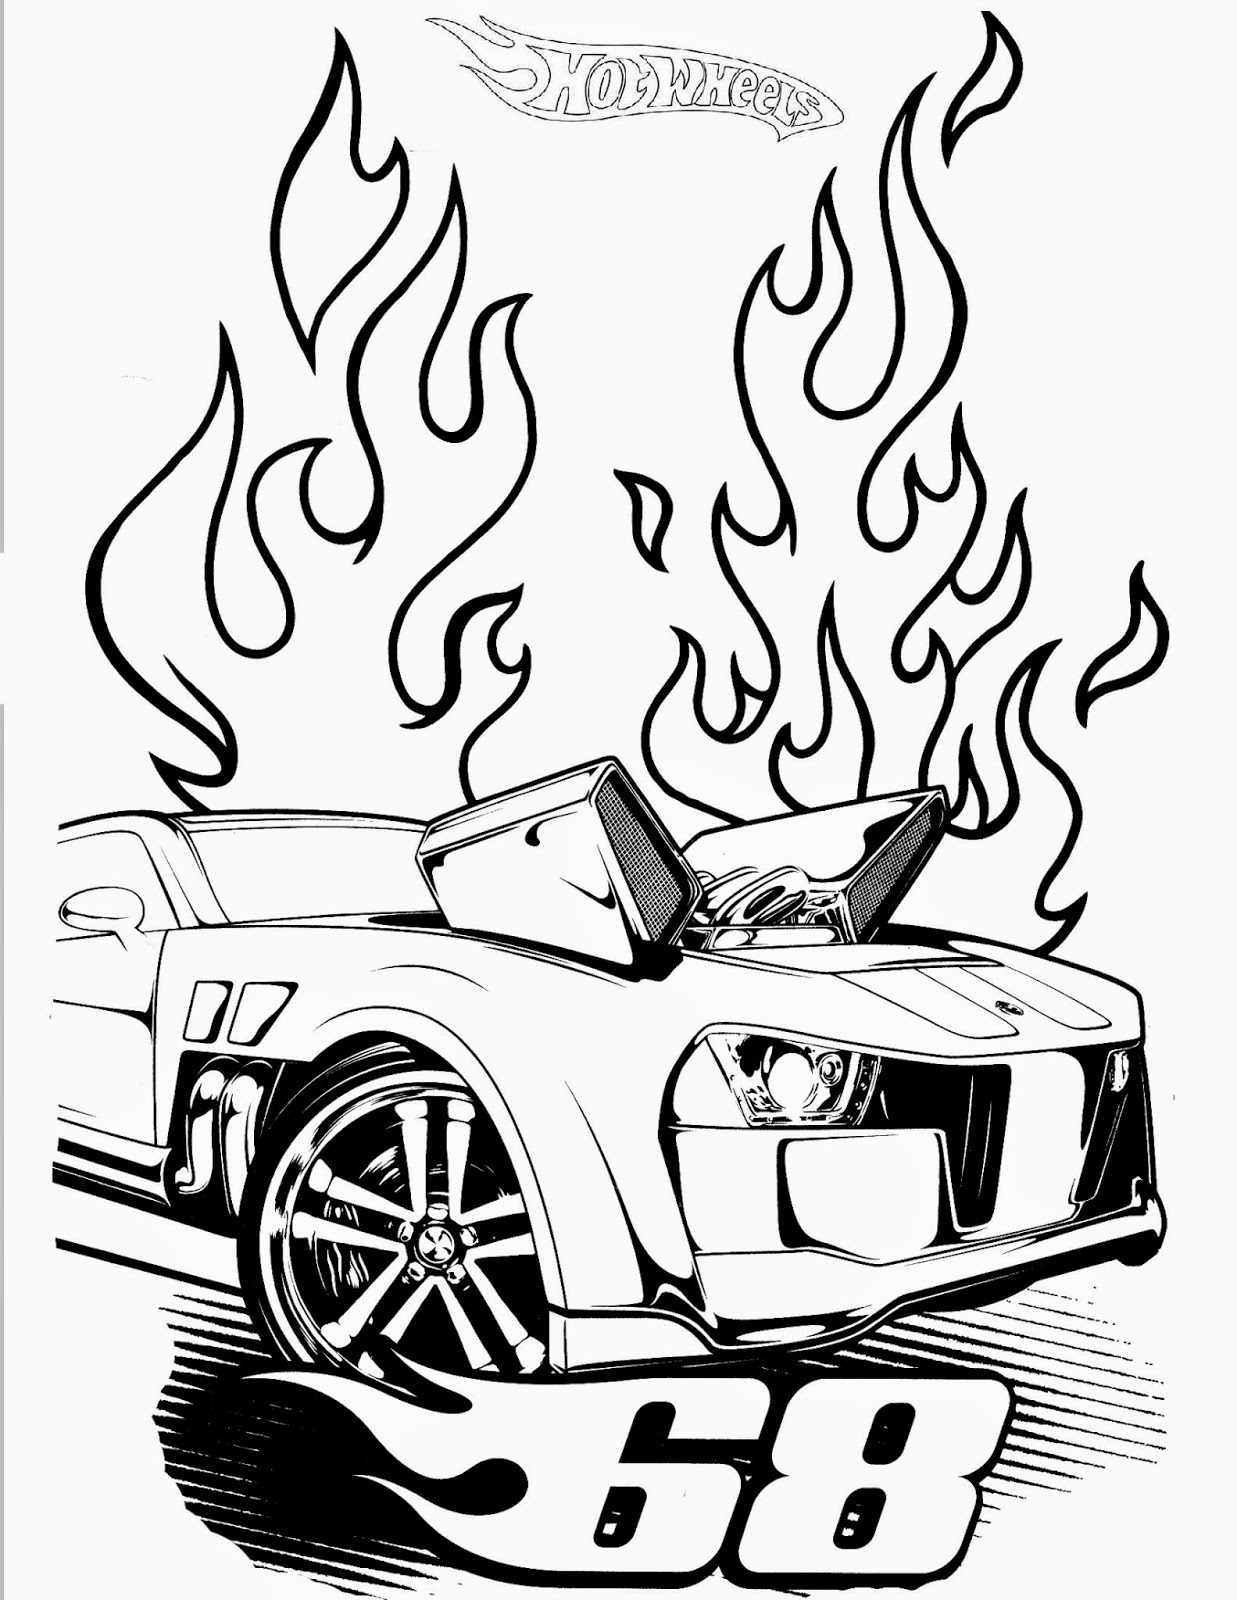 hot wheel coloring pages hot wheels racing league hot wheels coloring pages set 4 hot pages wheel coloring